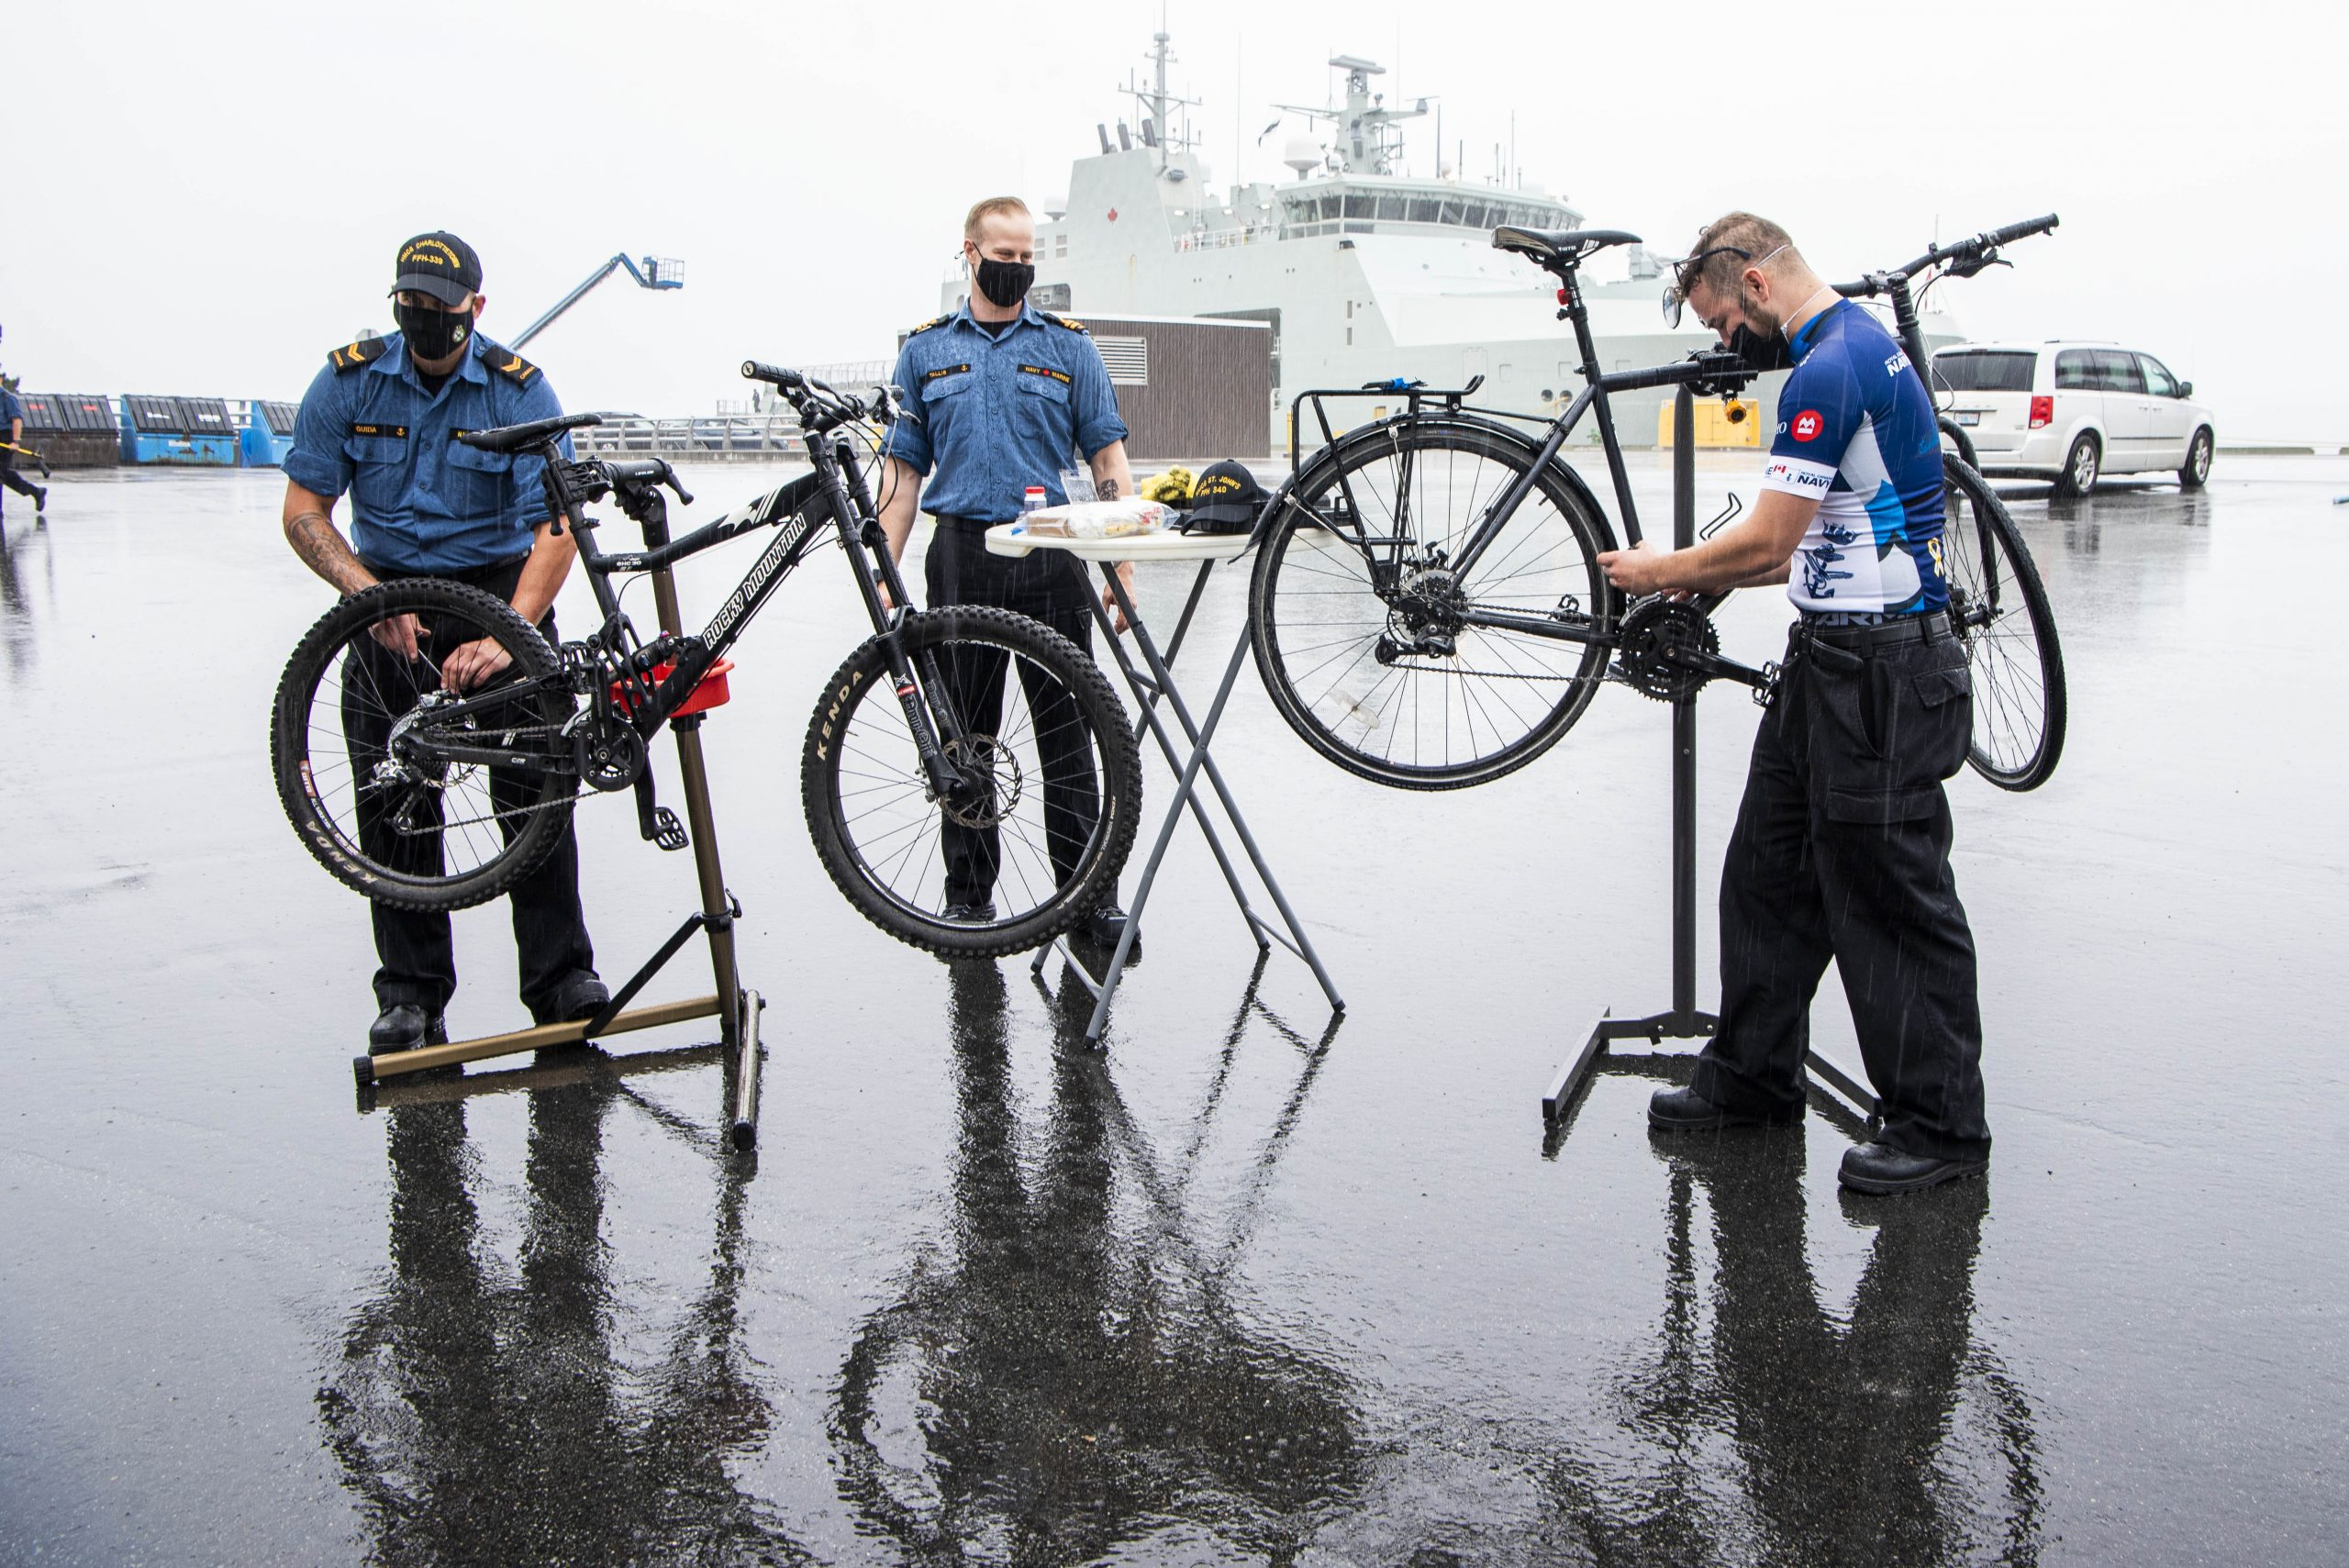 Tuning up for the Navy Bike Ride